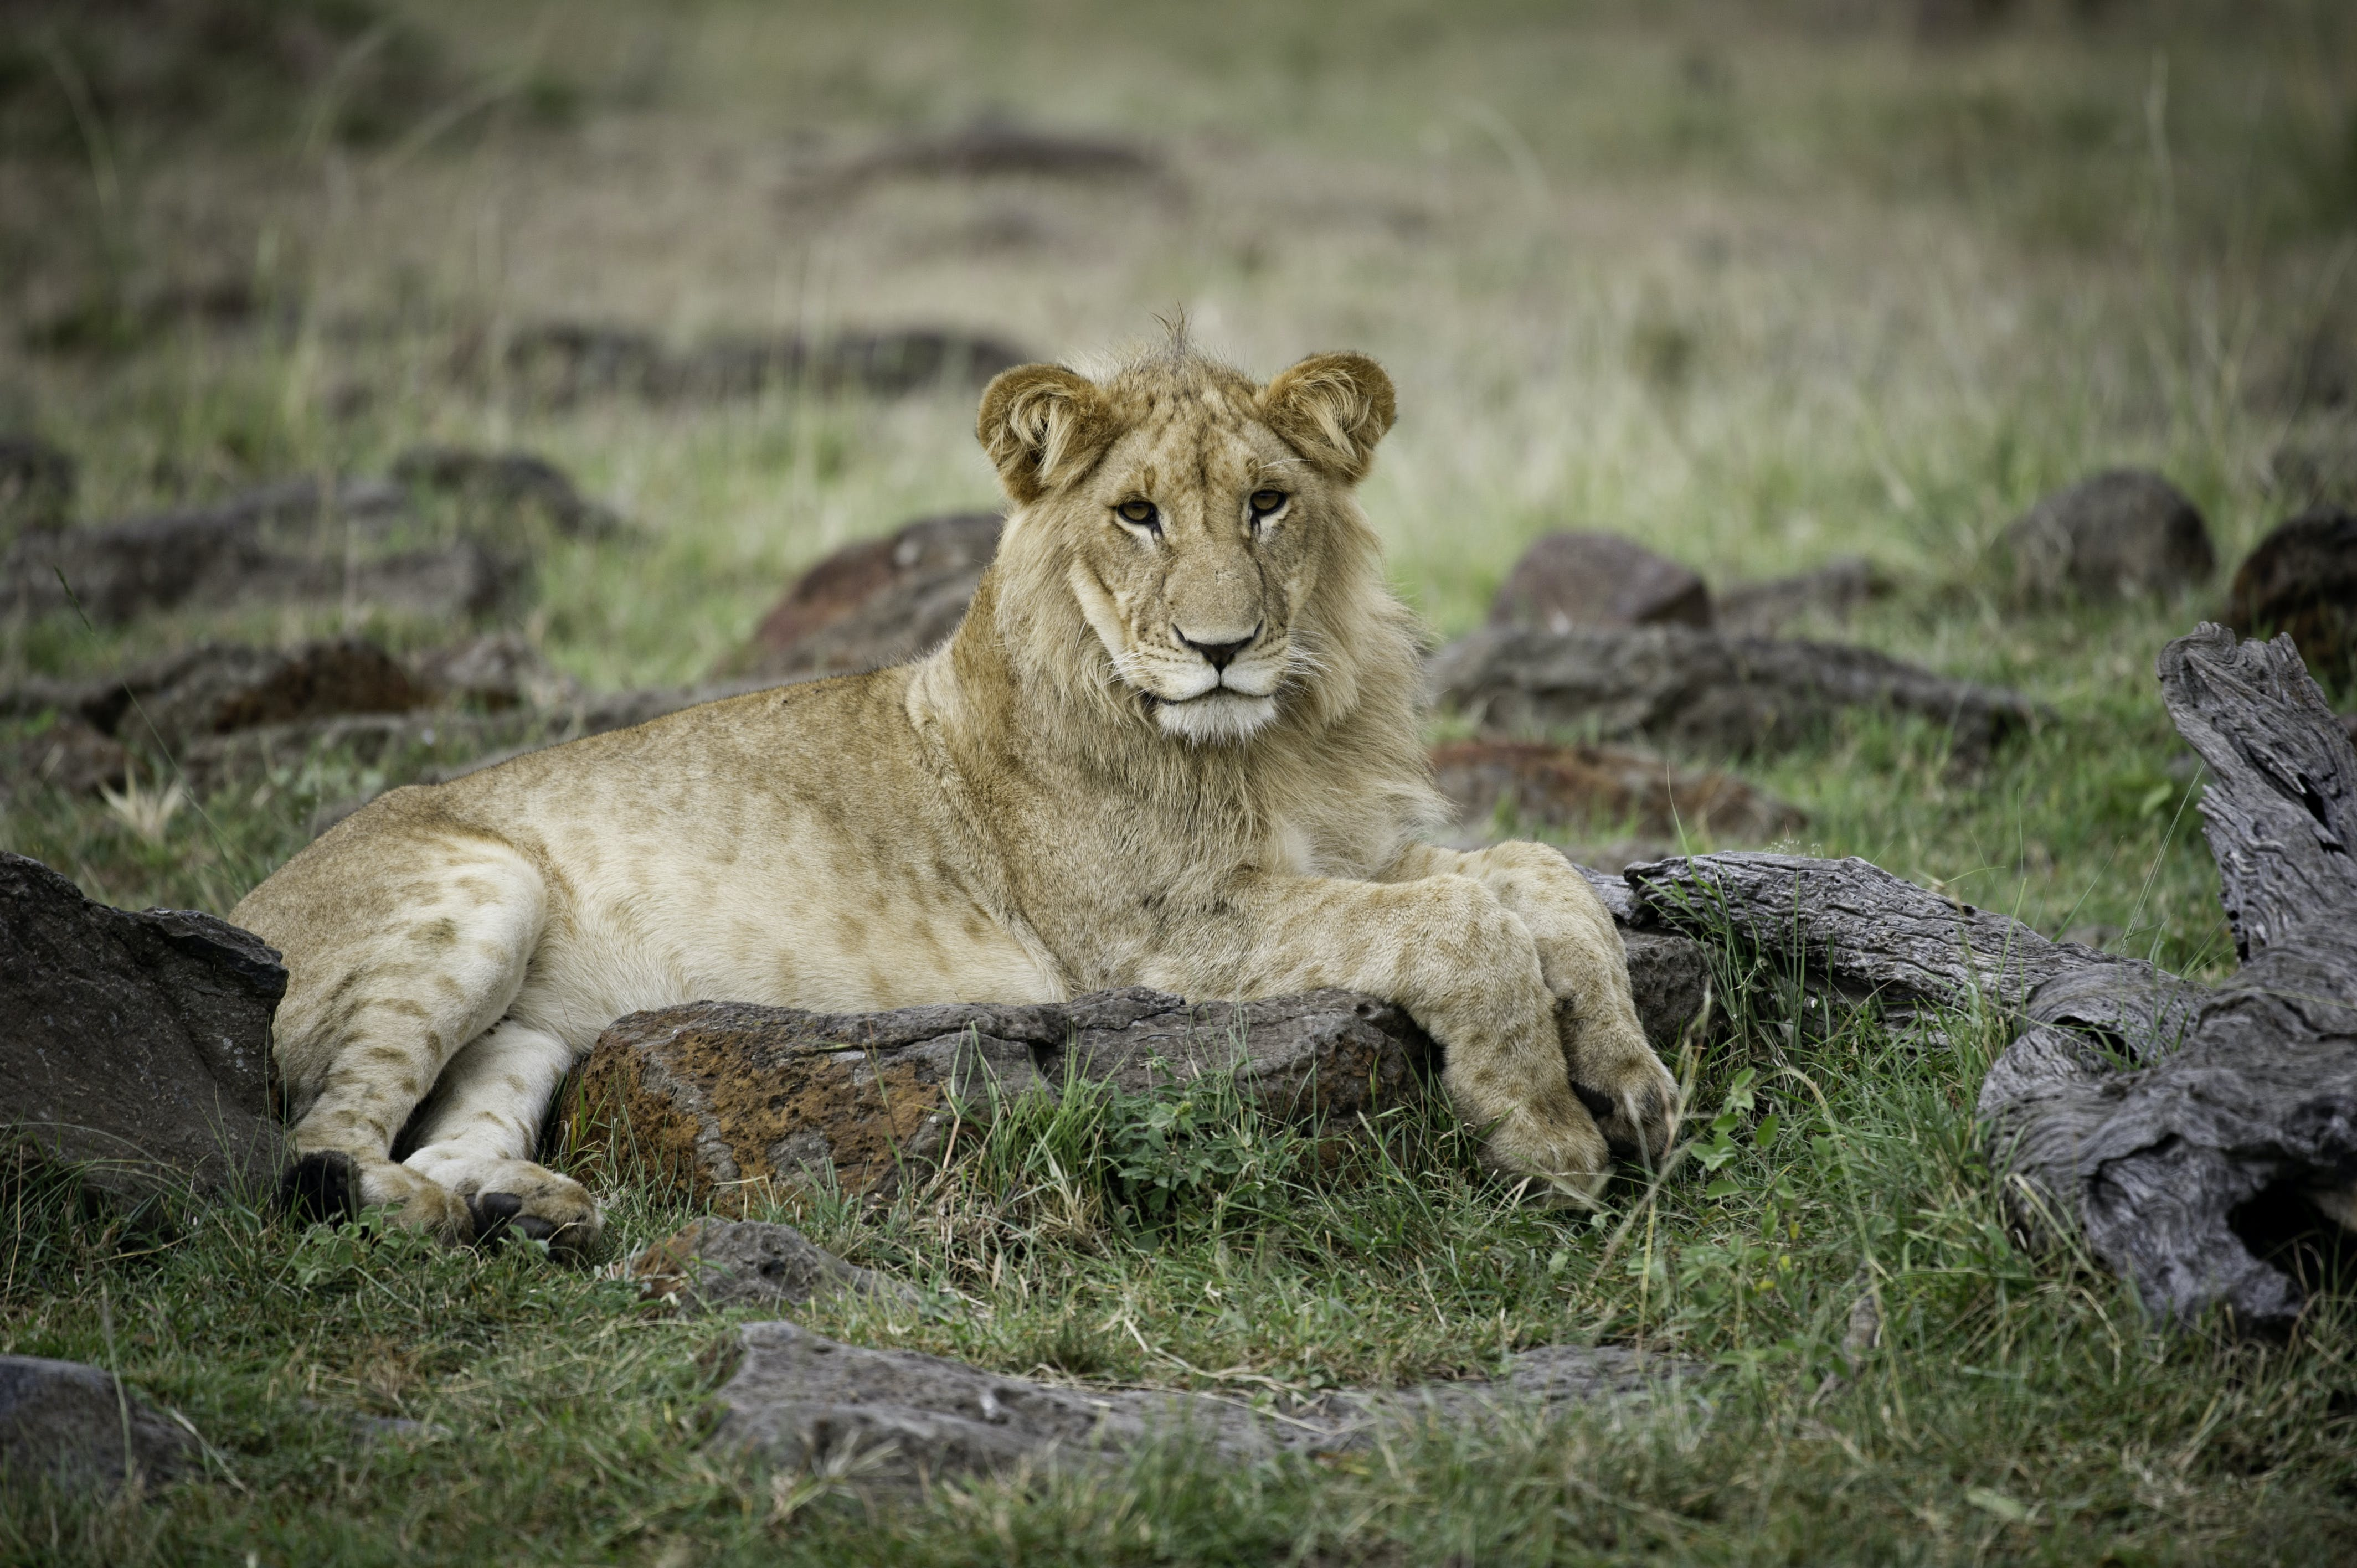 Photo of a Lioness Lying on Ground